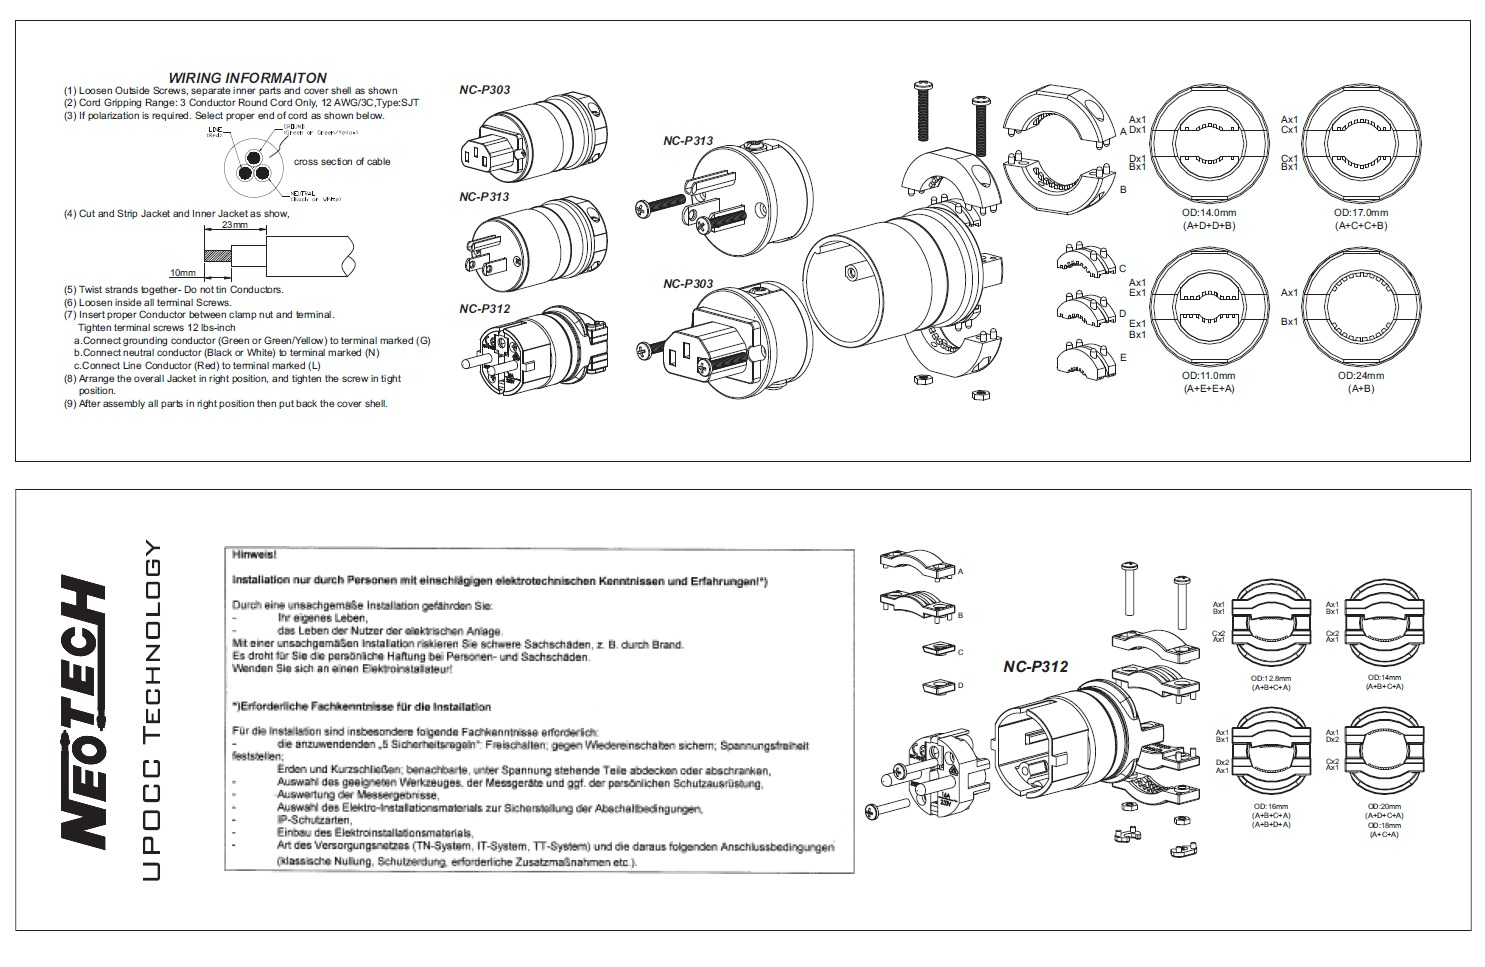 neotech nc p303 wiring diagram neotech nc p303, up occ copper iec plug, gold plated hifi collective iec plug wiring diagram at creativeand.co